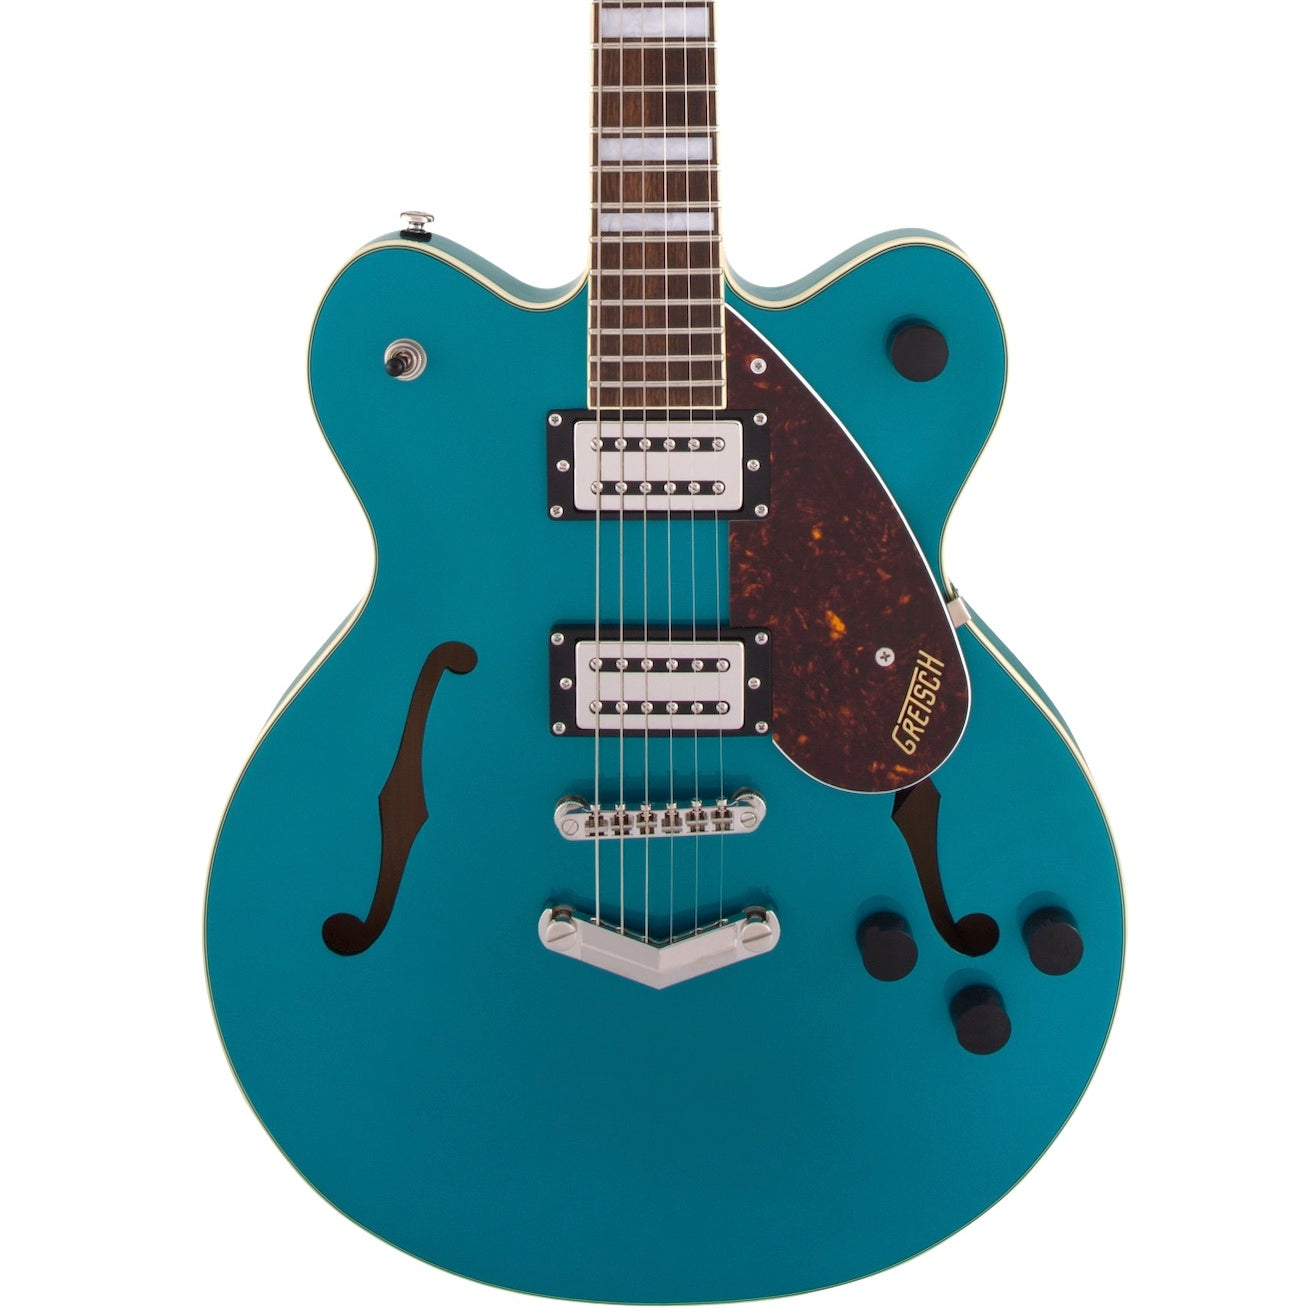 Gretsch G2622 Streamliner Center Block Ocean Turquoise | Music Experience | Shop Online | South Africa